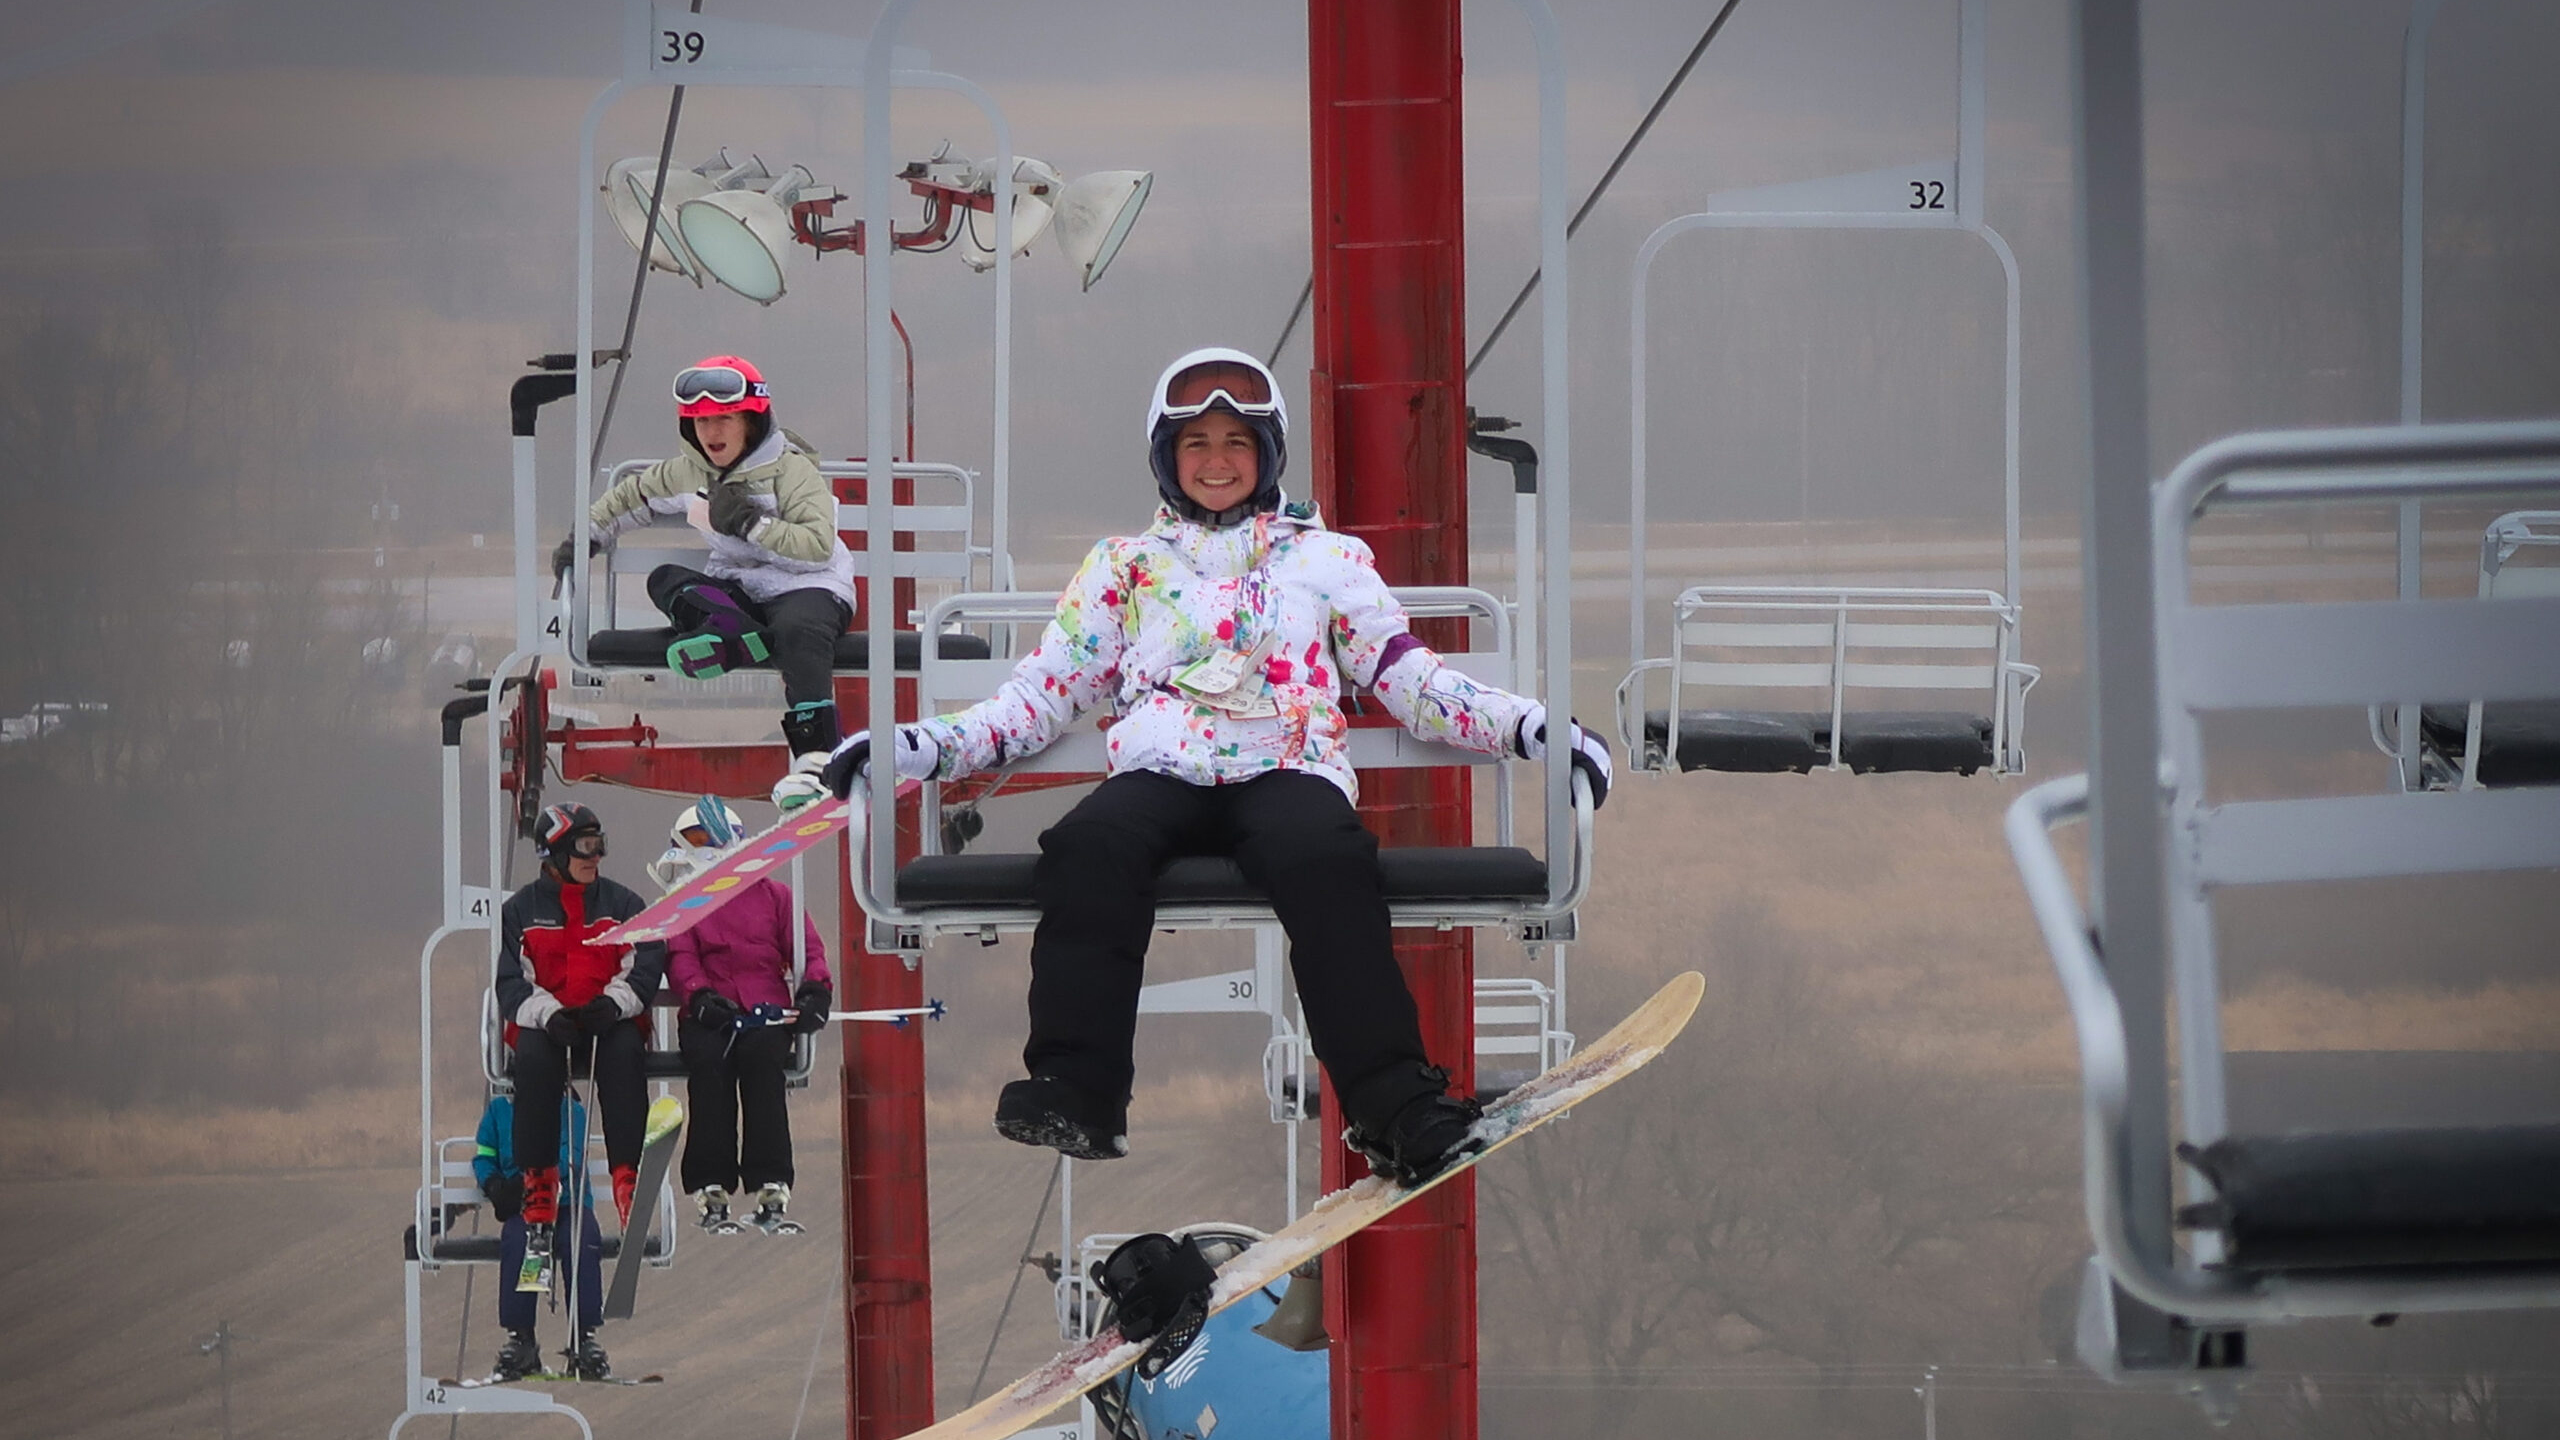 individuals riding a ski lift